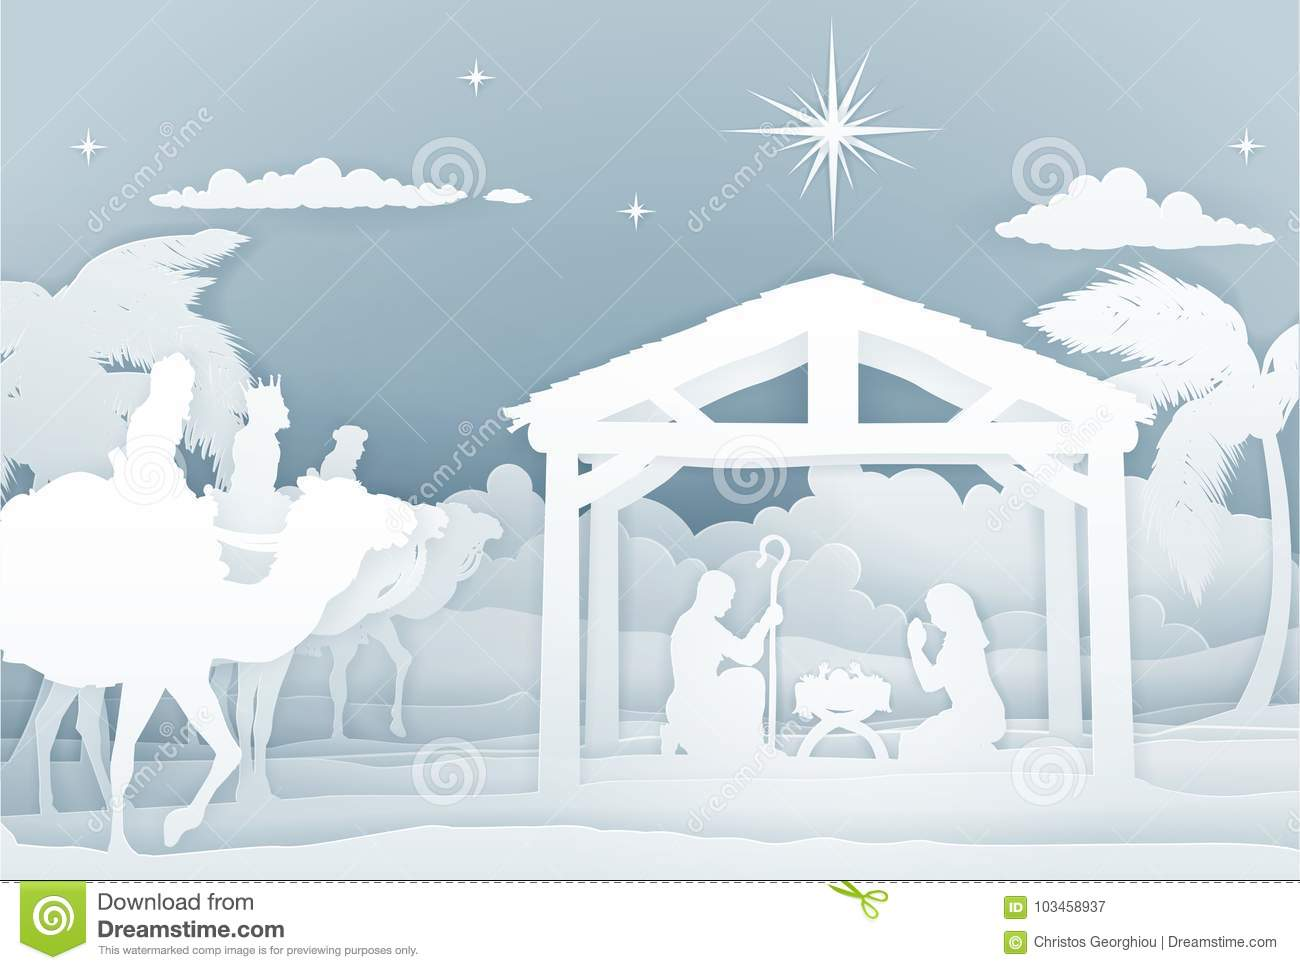 Nativity Scene With Three Wise Men Stock Vector - Illustration of ...